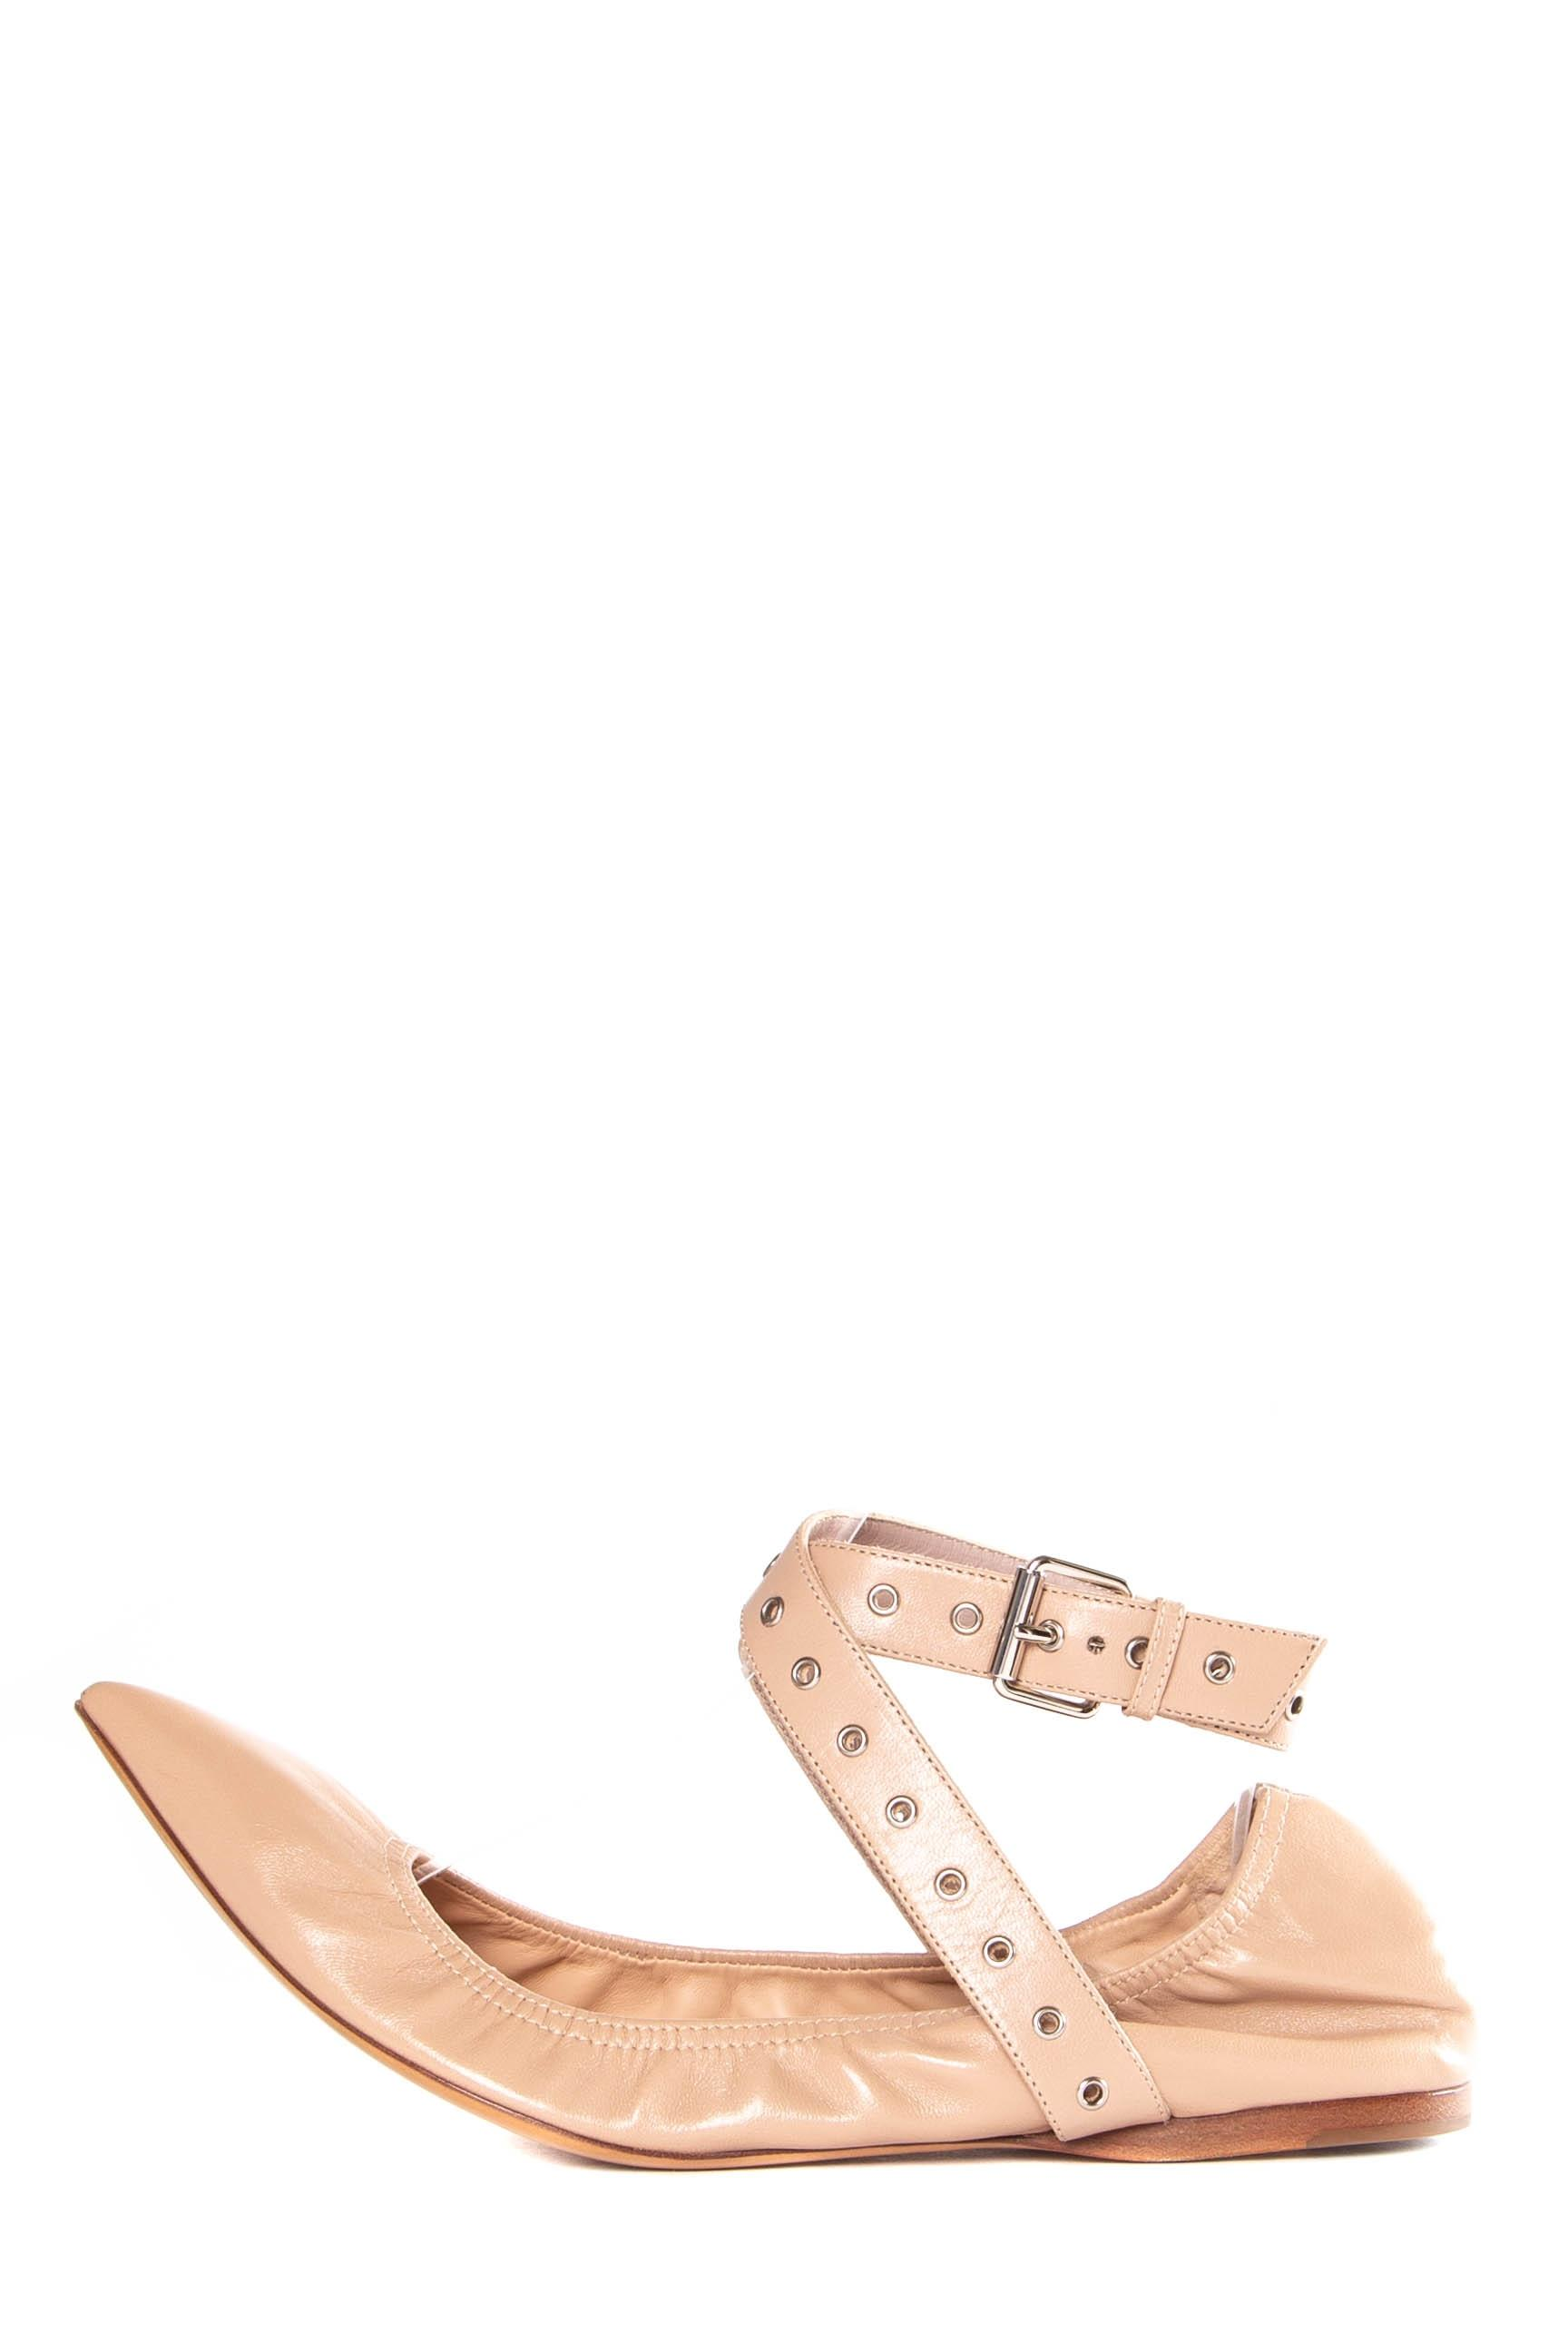 679eb08f0 Valentino Blush Leather Love Flats Size EU 40 40 40 (Approx. US 10) Regular  (M